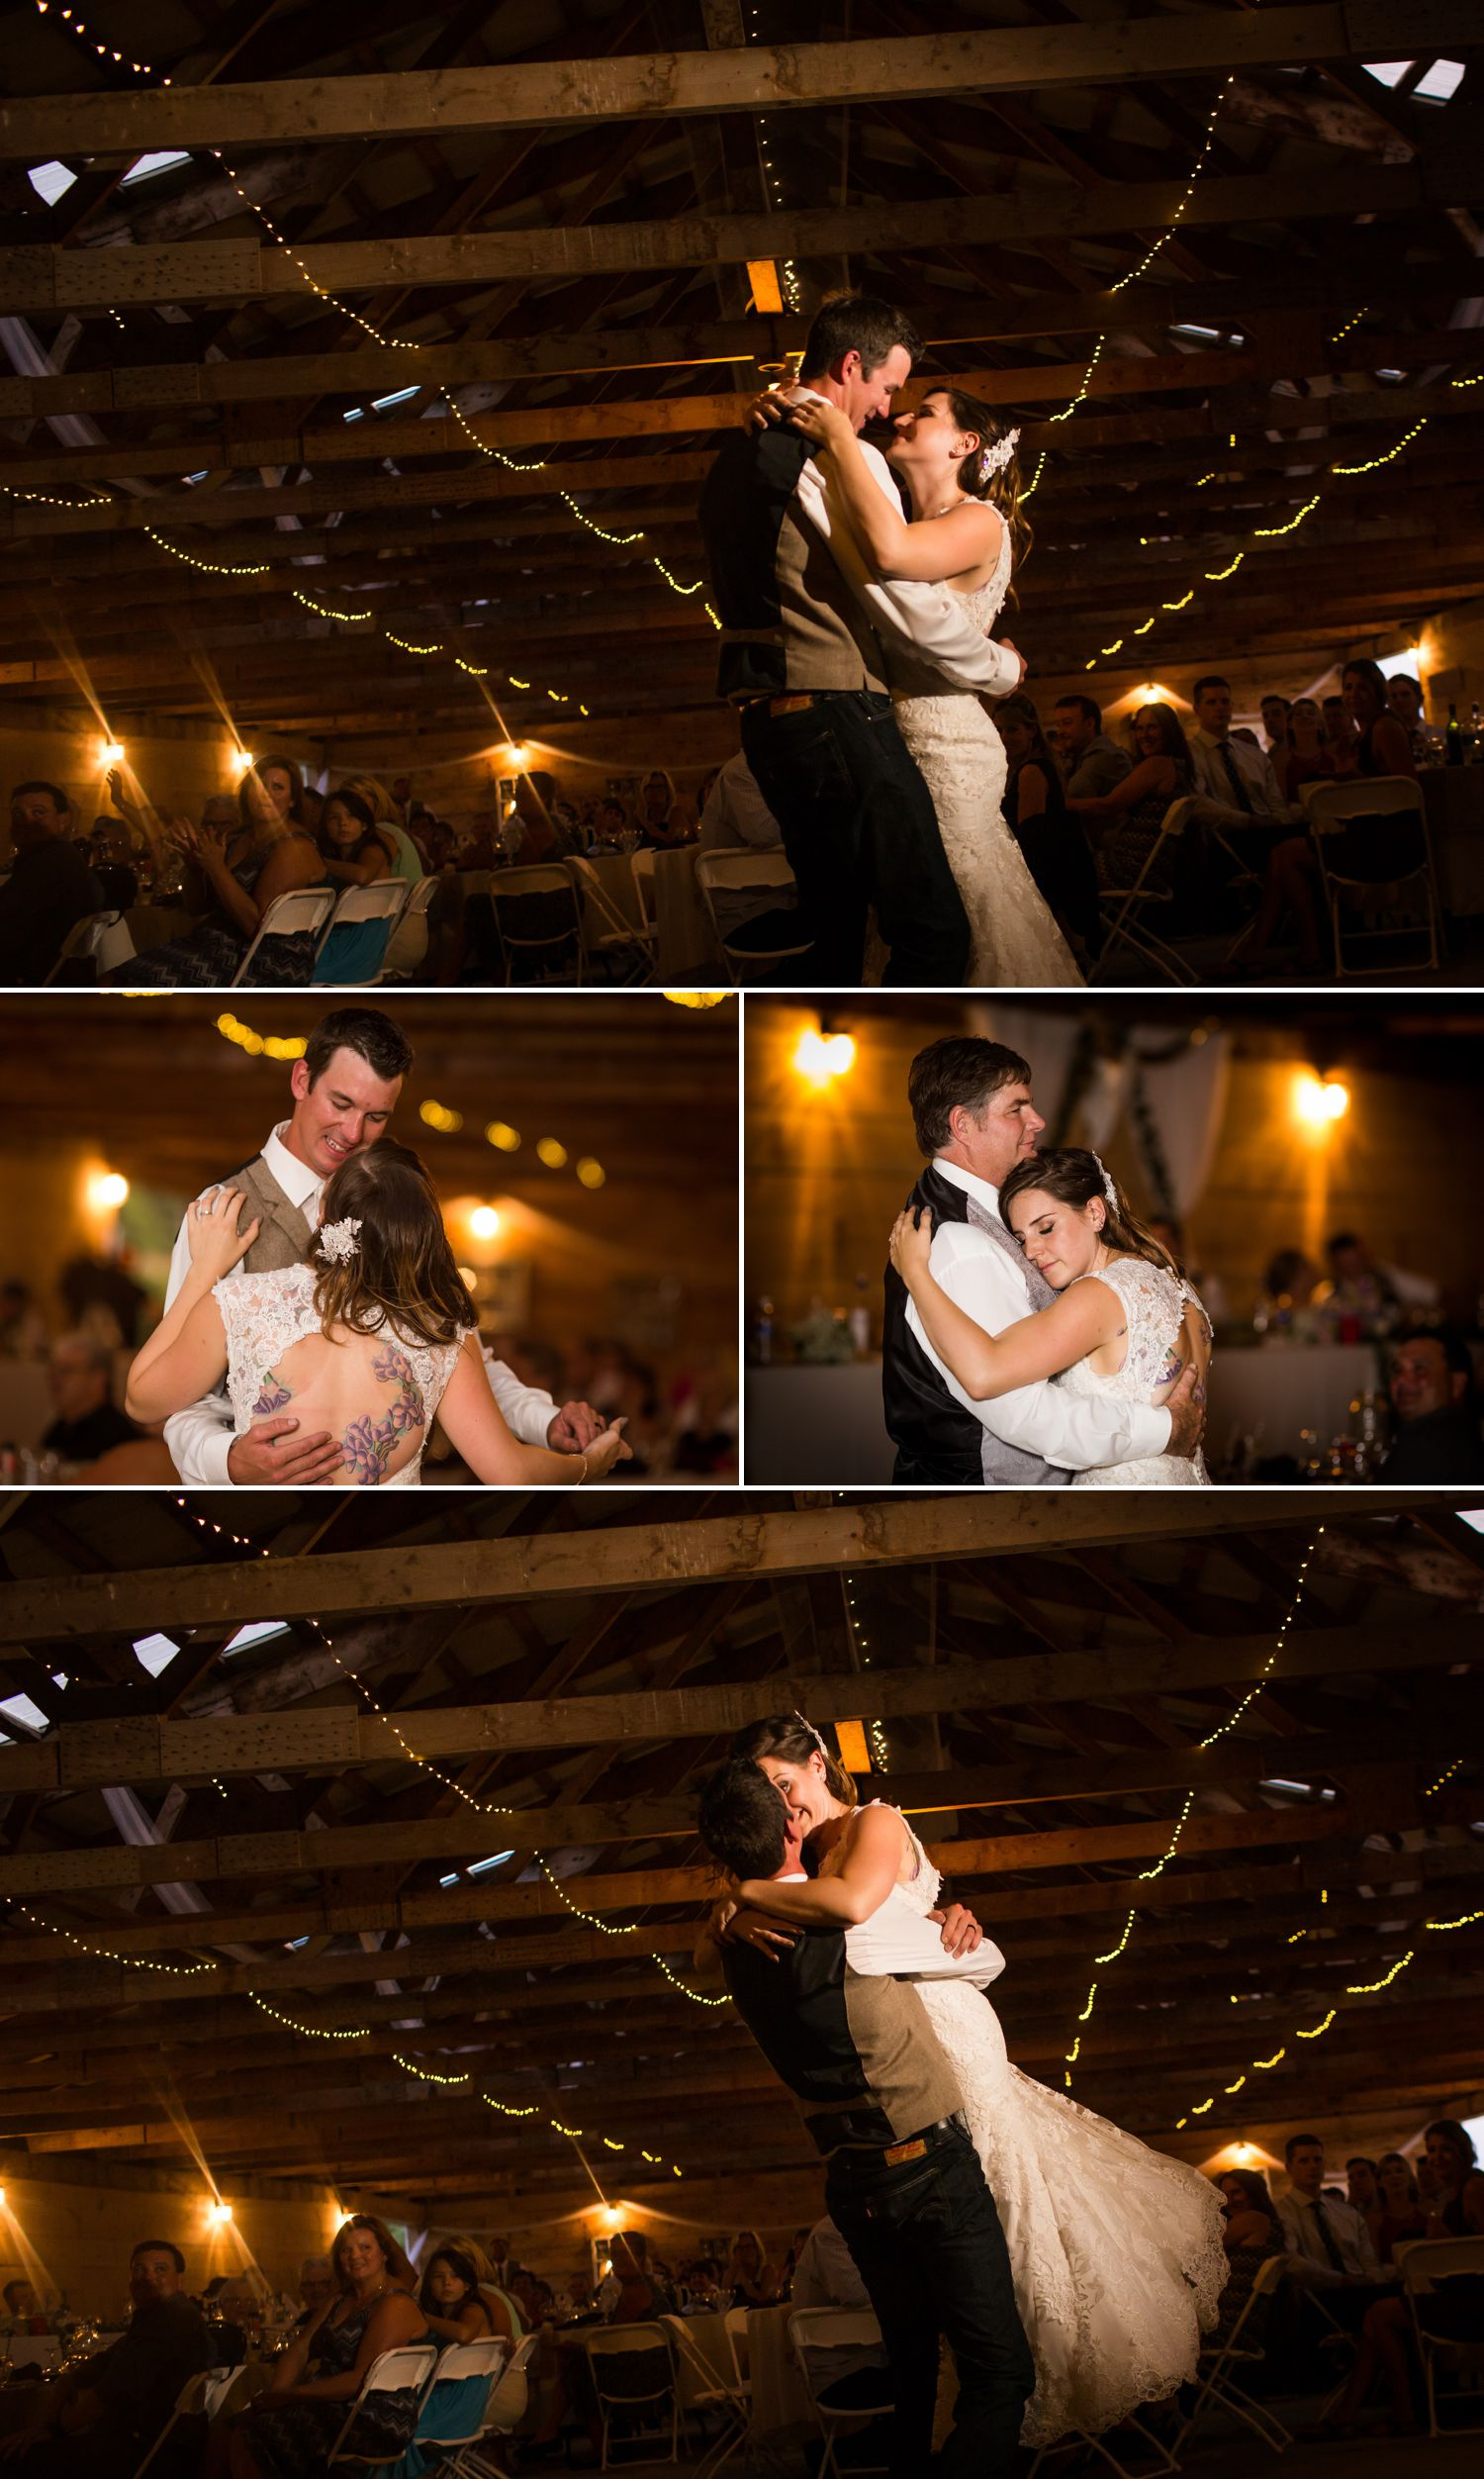 The bride and groom during their first dance inside their rustic barn